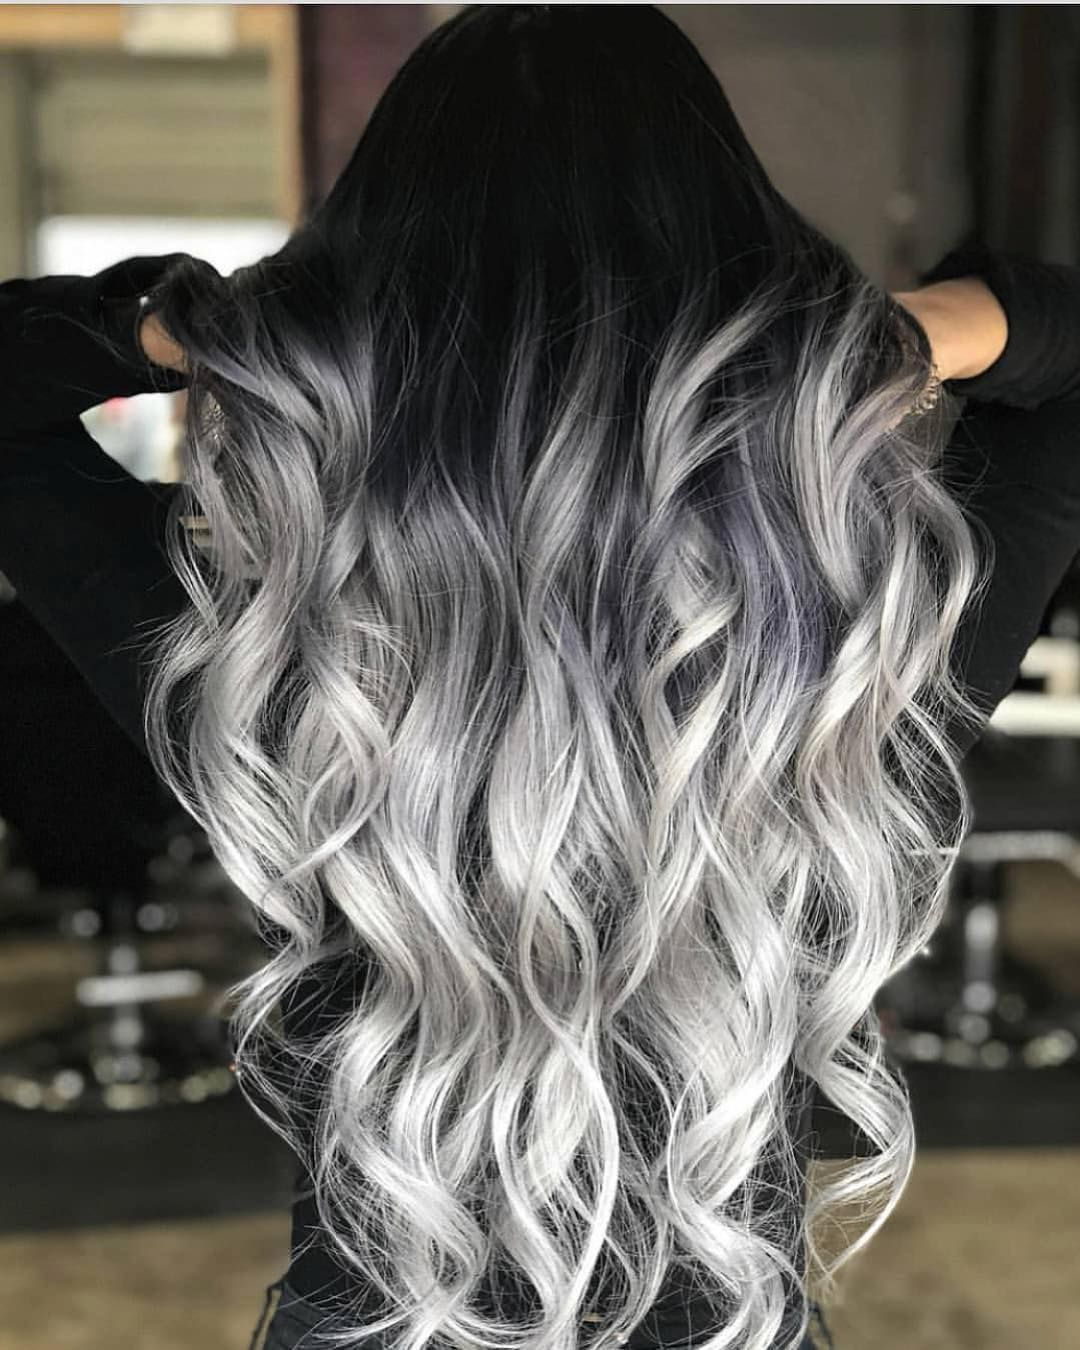 Black And White Hair Hair Styles Grey Ombre Hair Cool Hair Color